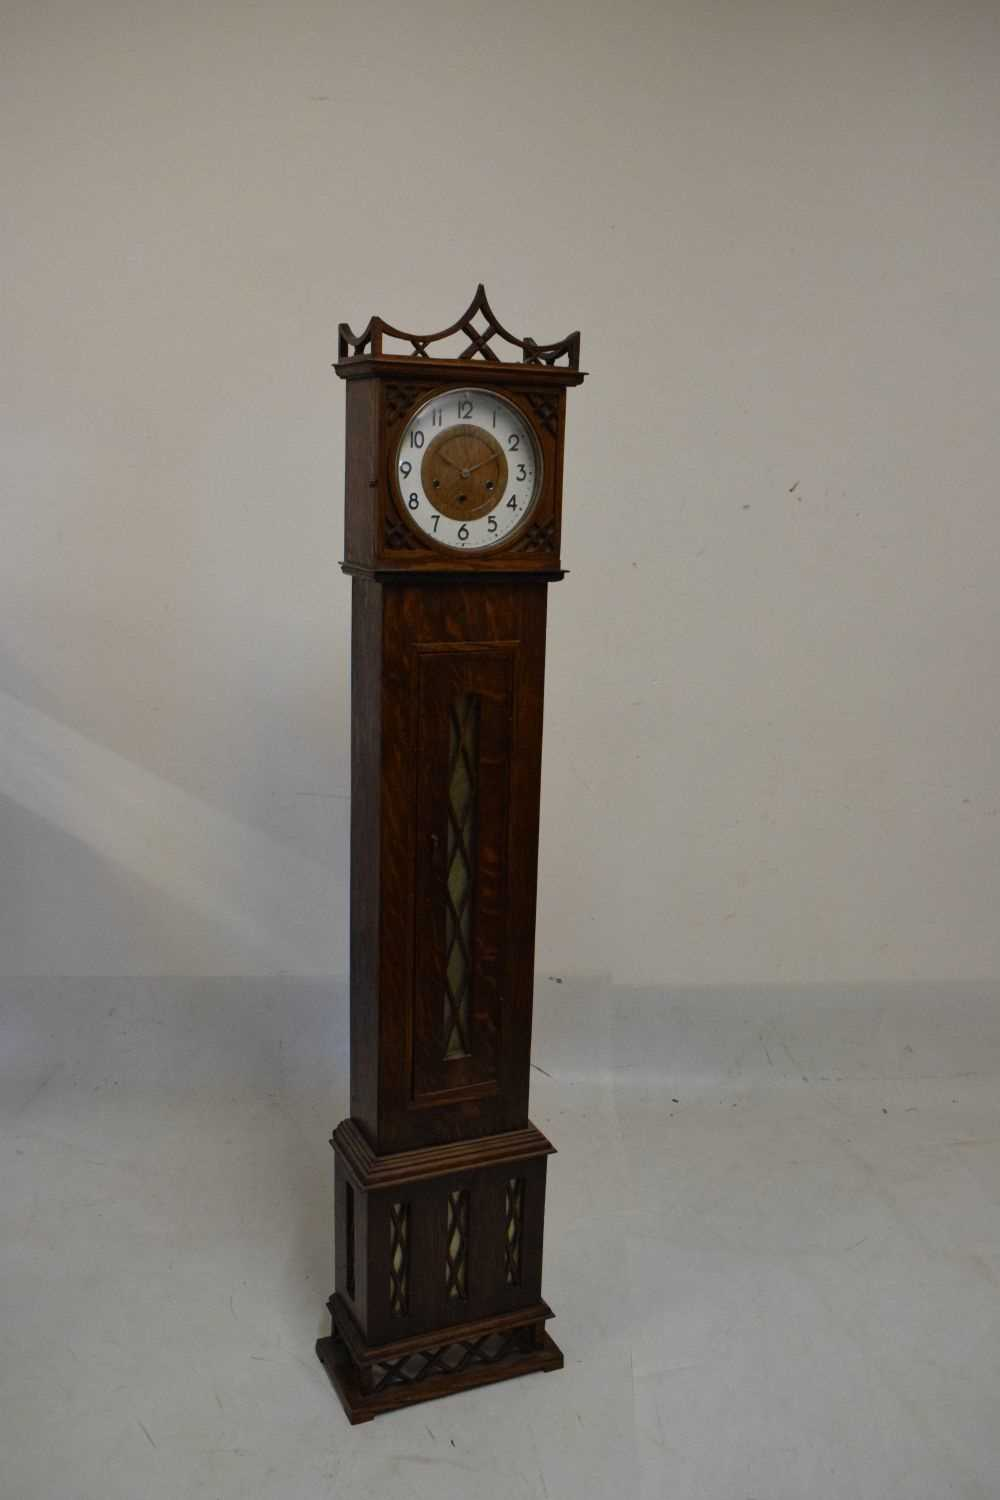 Early 20th Century oak-cased grandmother clock - Image 2 of 5